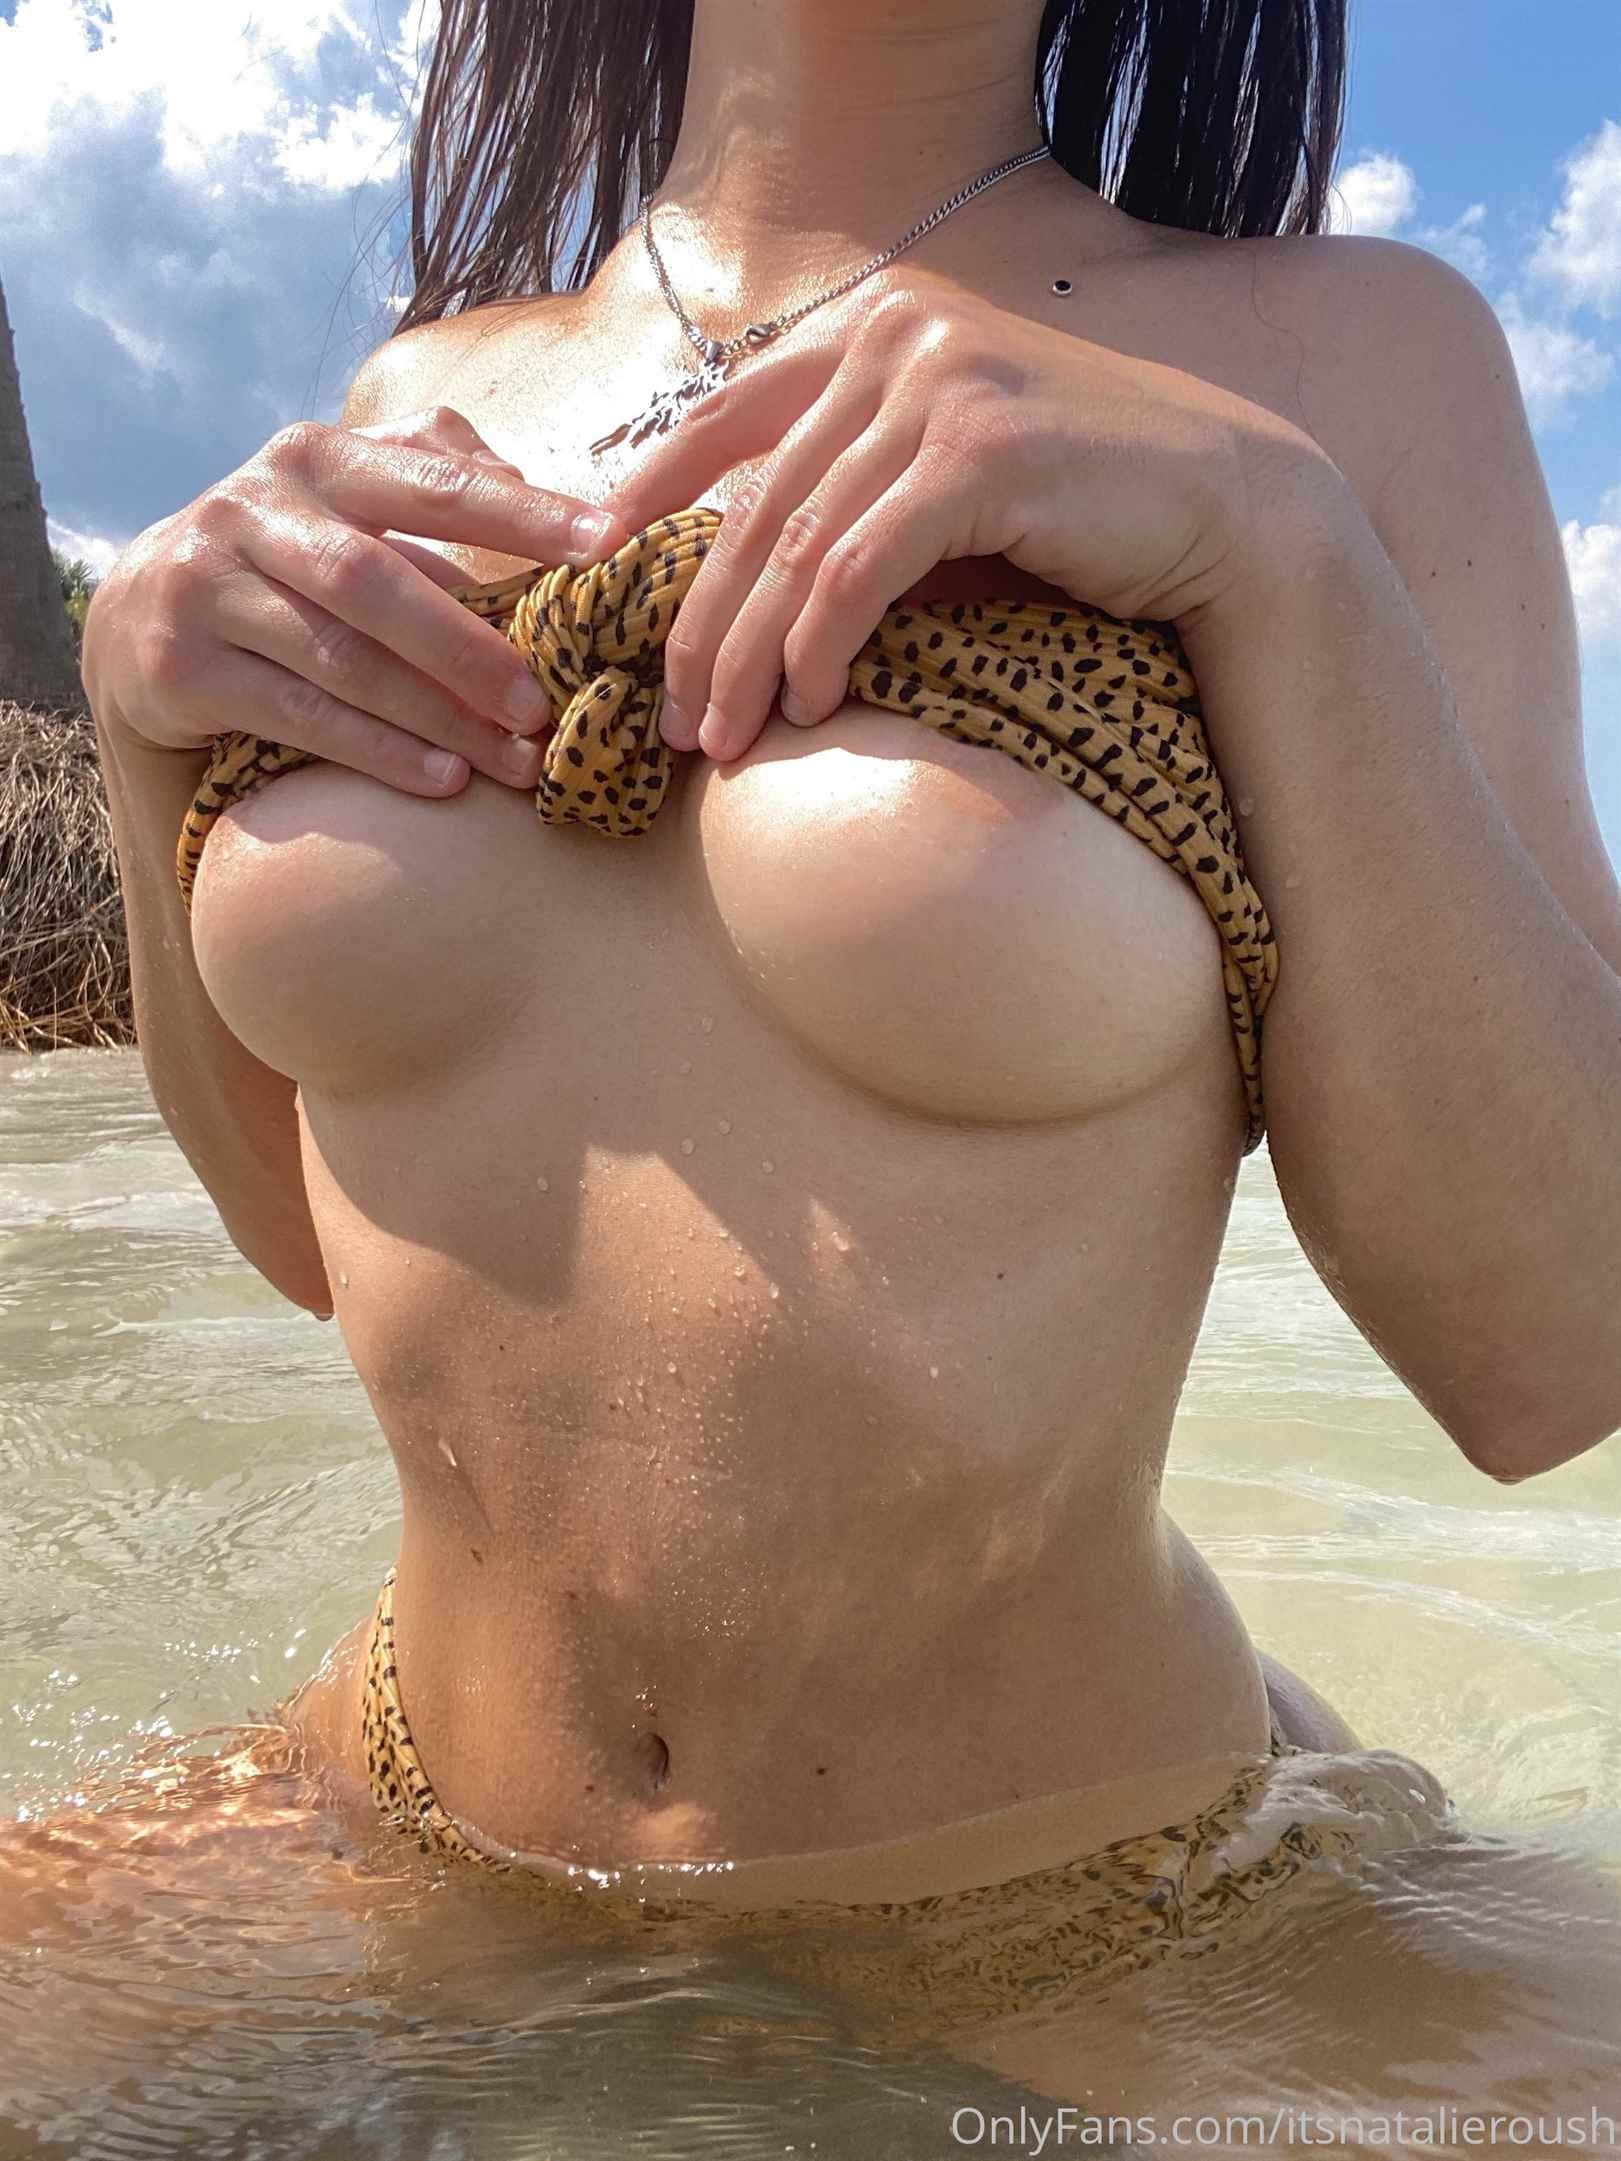 Natalie Roush Nude Leaked Onlyfans Photos 0029